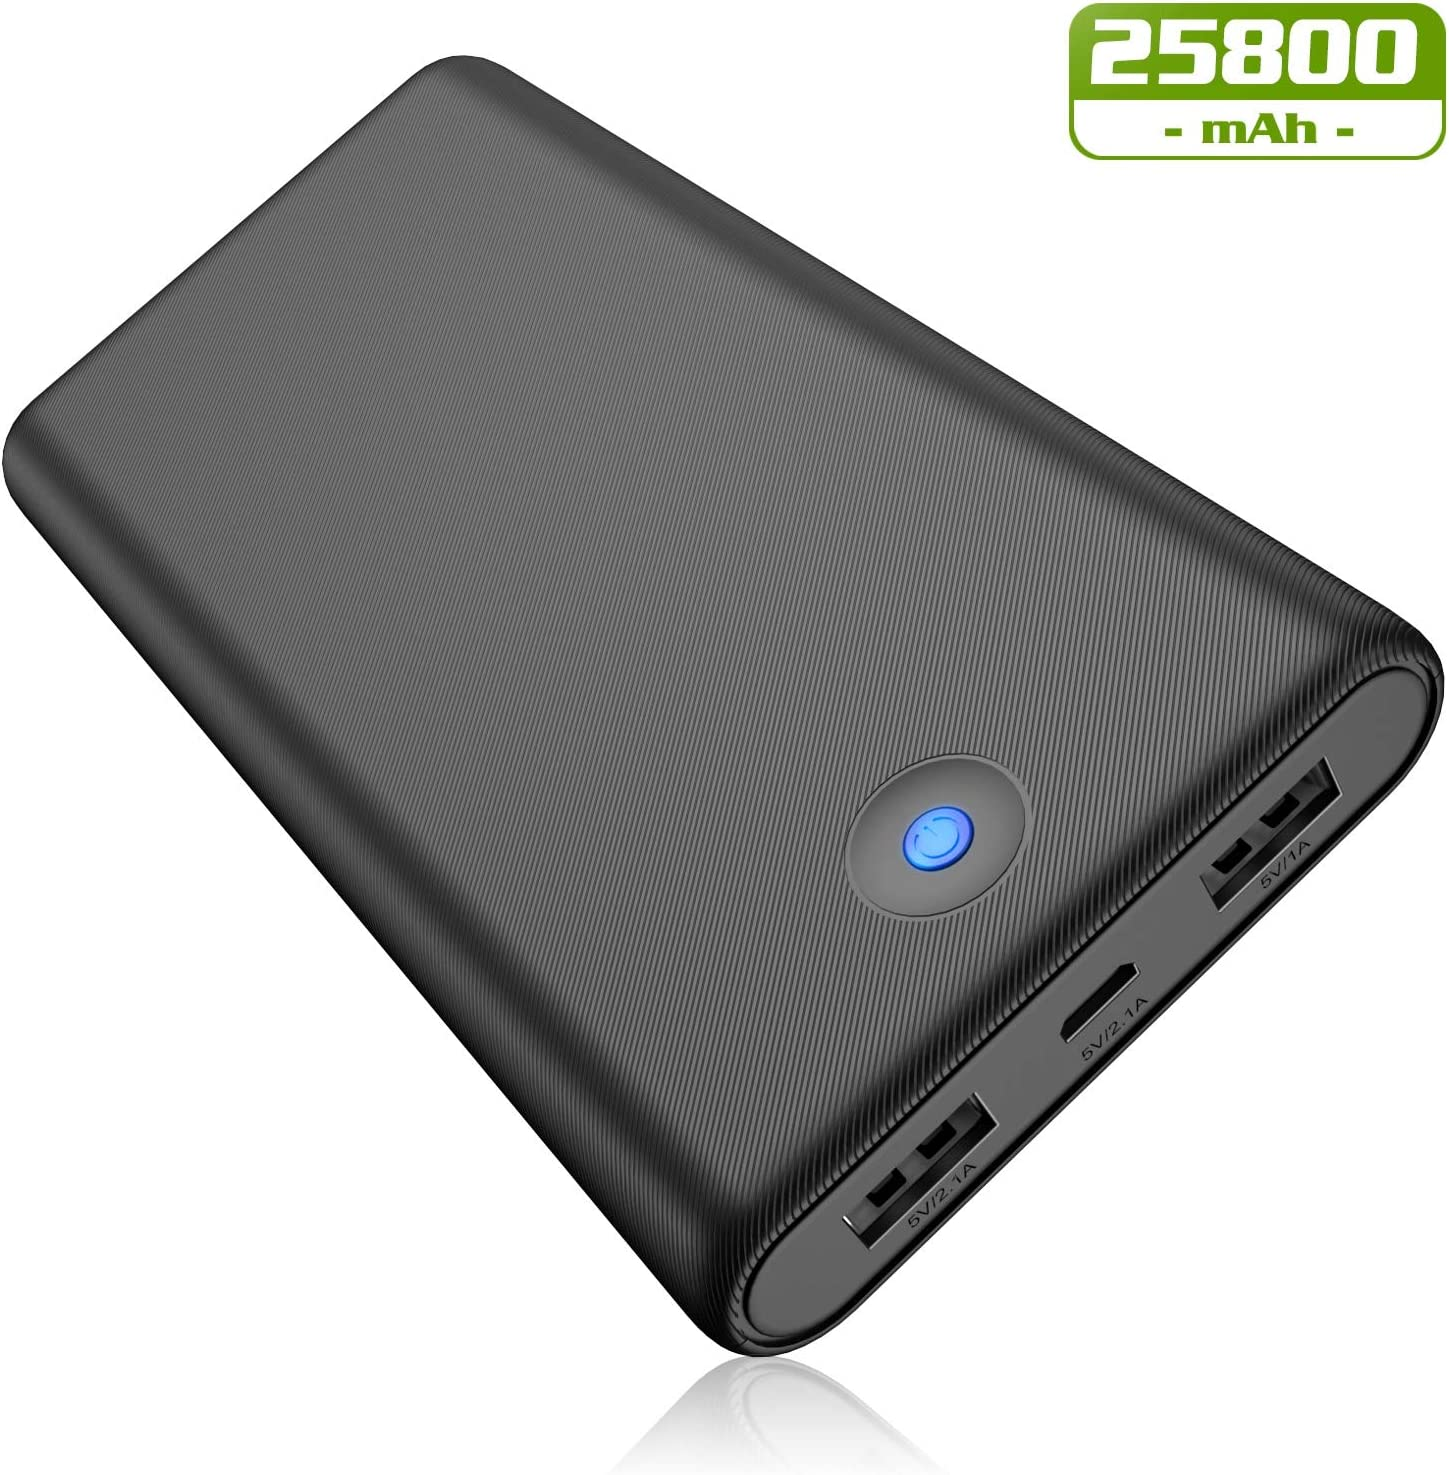 Portable Charger Power Bank [25800mAh Newest Version] Ultra Compact External Battery Pack with Colorful Indicator, 2 USB Ports Quick Charging Portable Phone Charger for iPhone Samsung Android Tablet